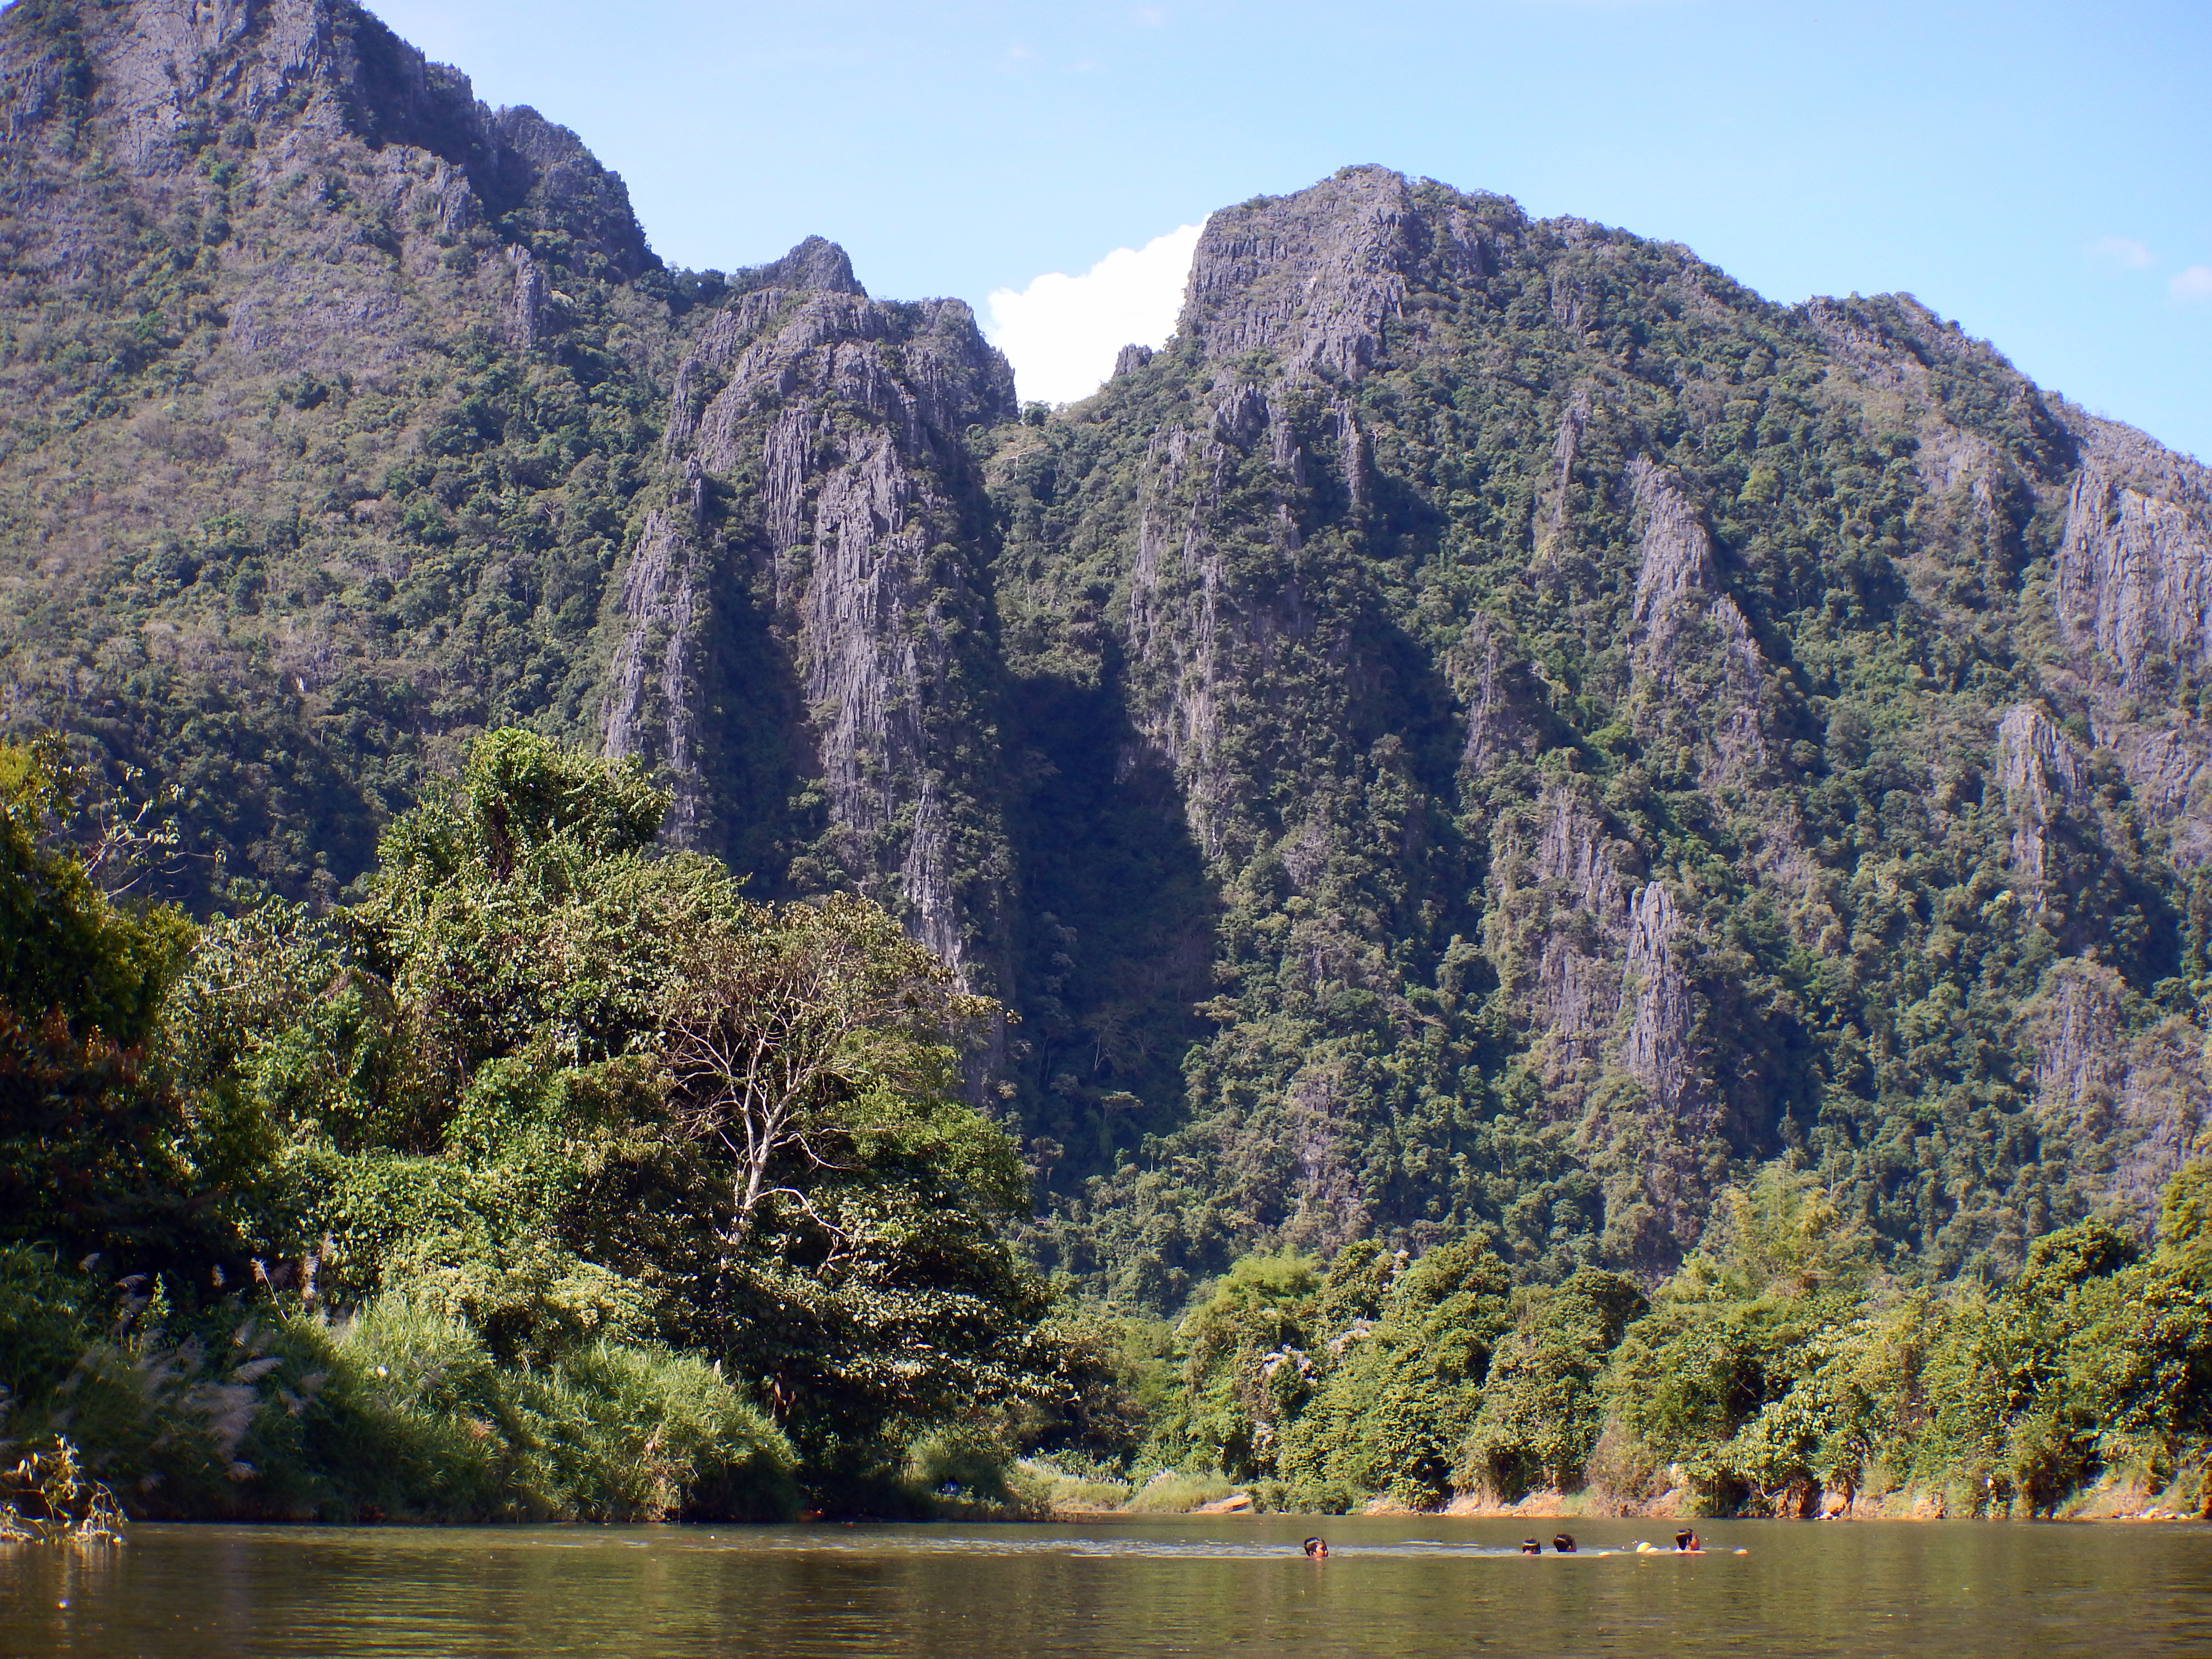 Floating the Nam Song River in Vang Vieng, Laos